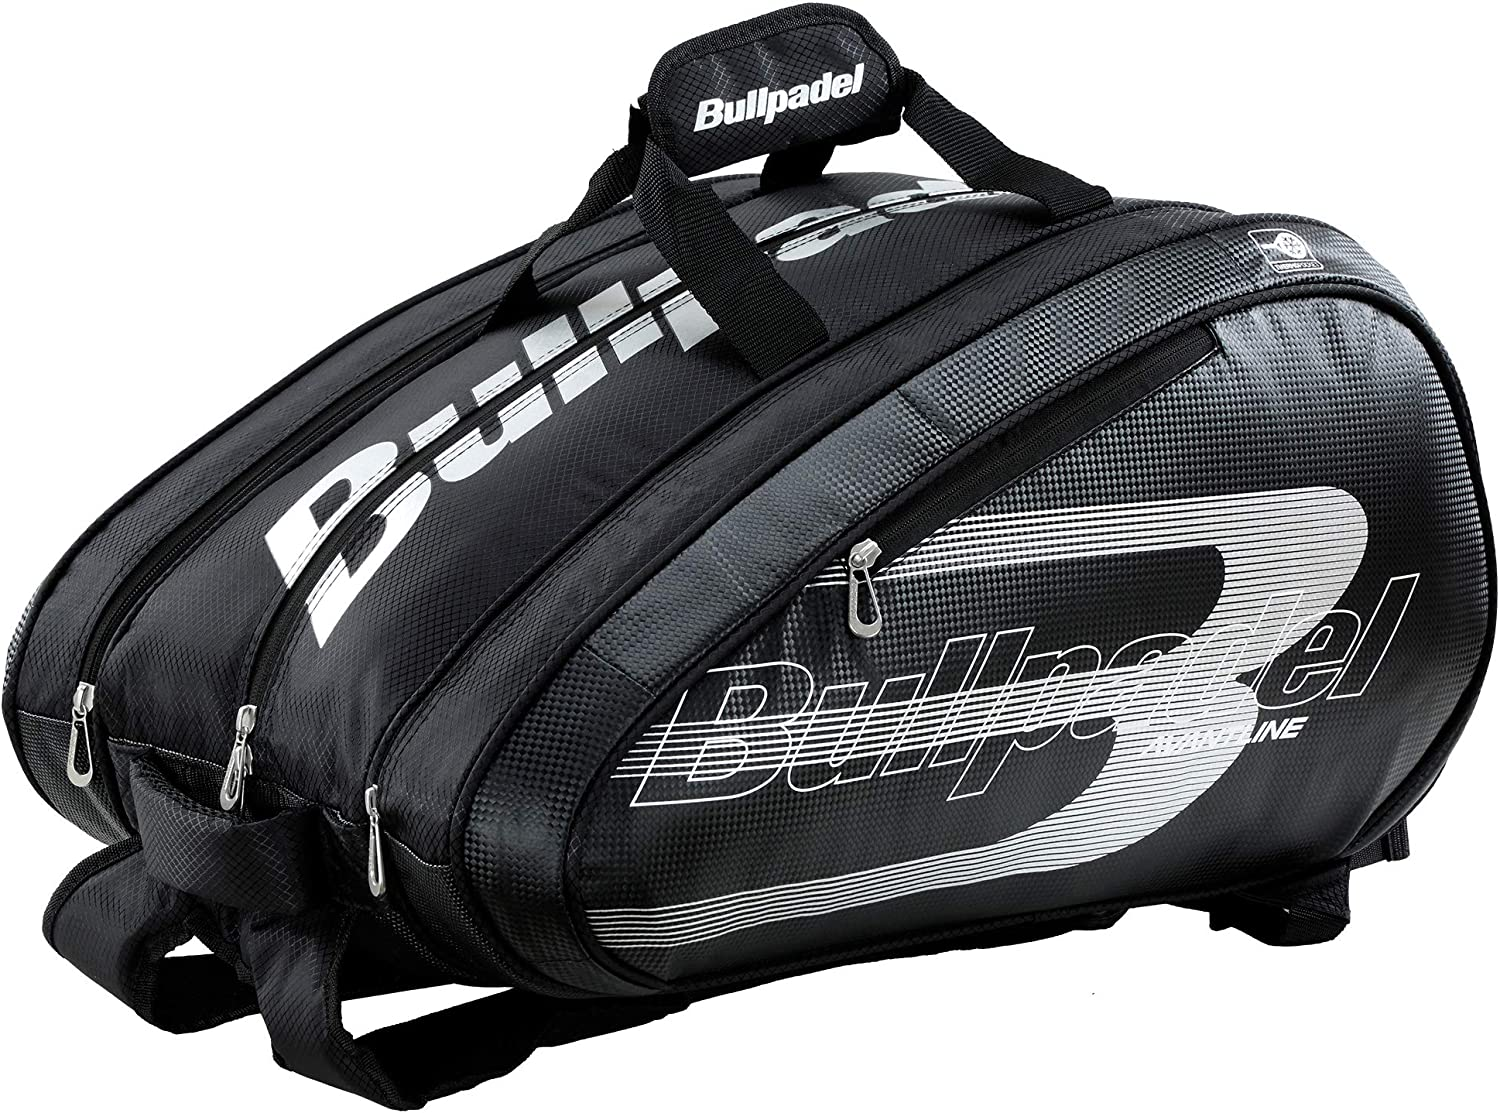 Paletero Bullpadel Avant S LTD Carbon Black: Amazon.es: Deportes y ...